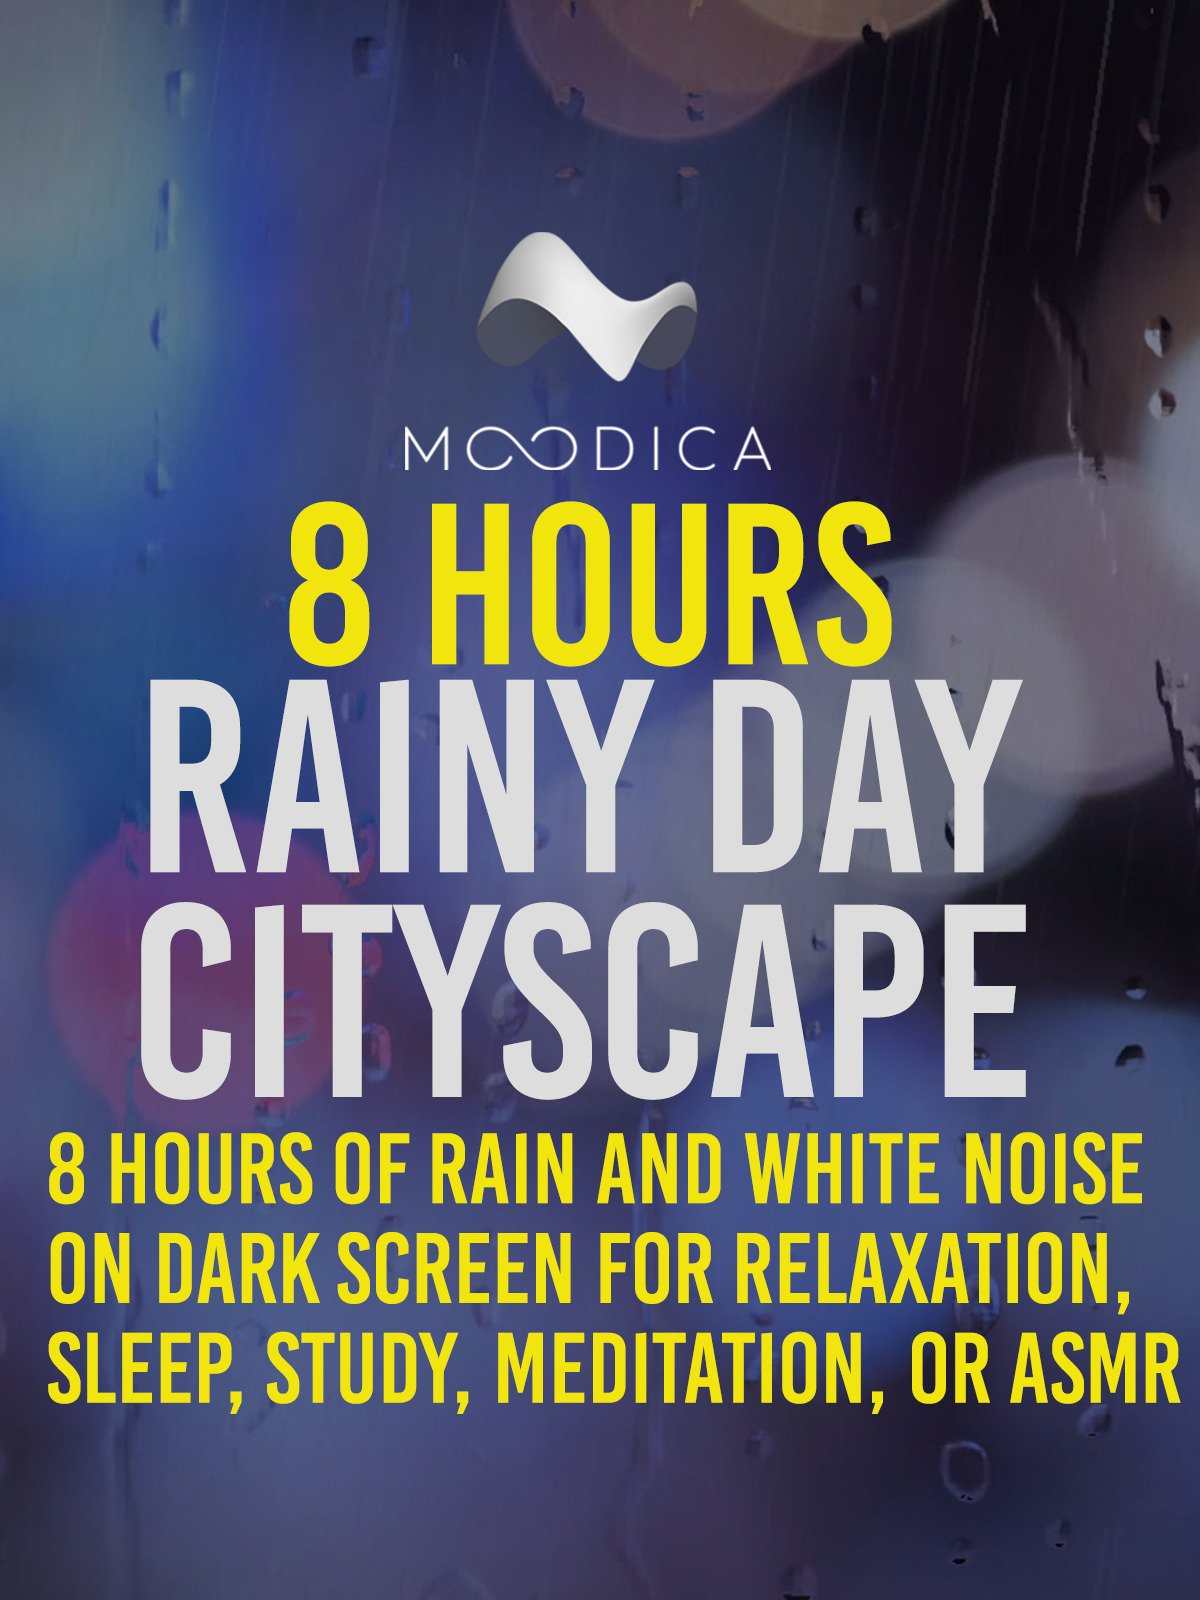 8 Hours: Rainy Day Cityscape: 8 Hours of Rain and White Noise on Dark Screen for Relaxation, Sleep, Study, Meditation, or ASMR